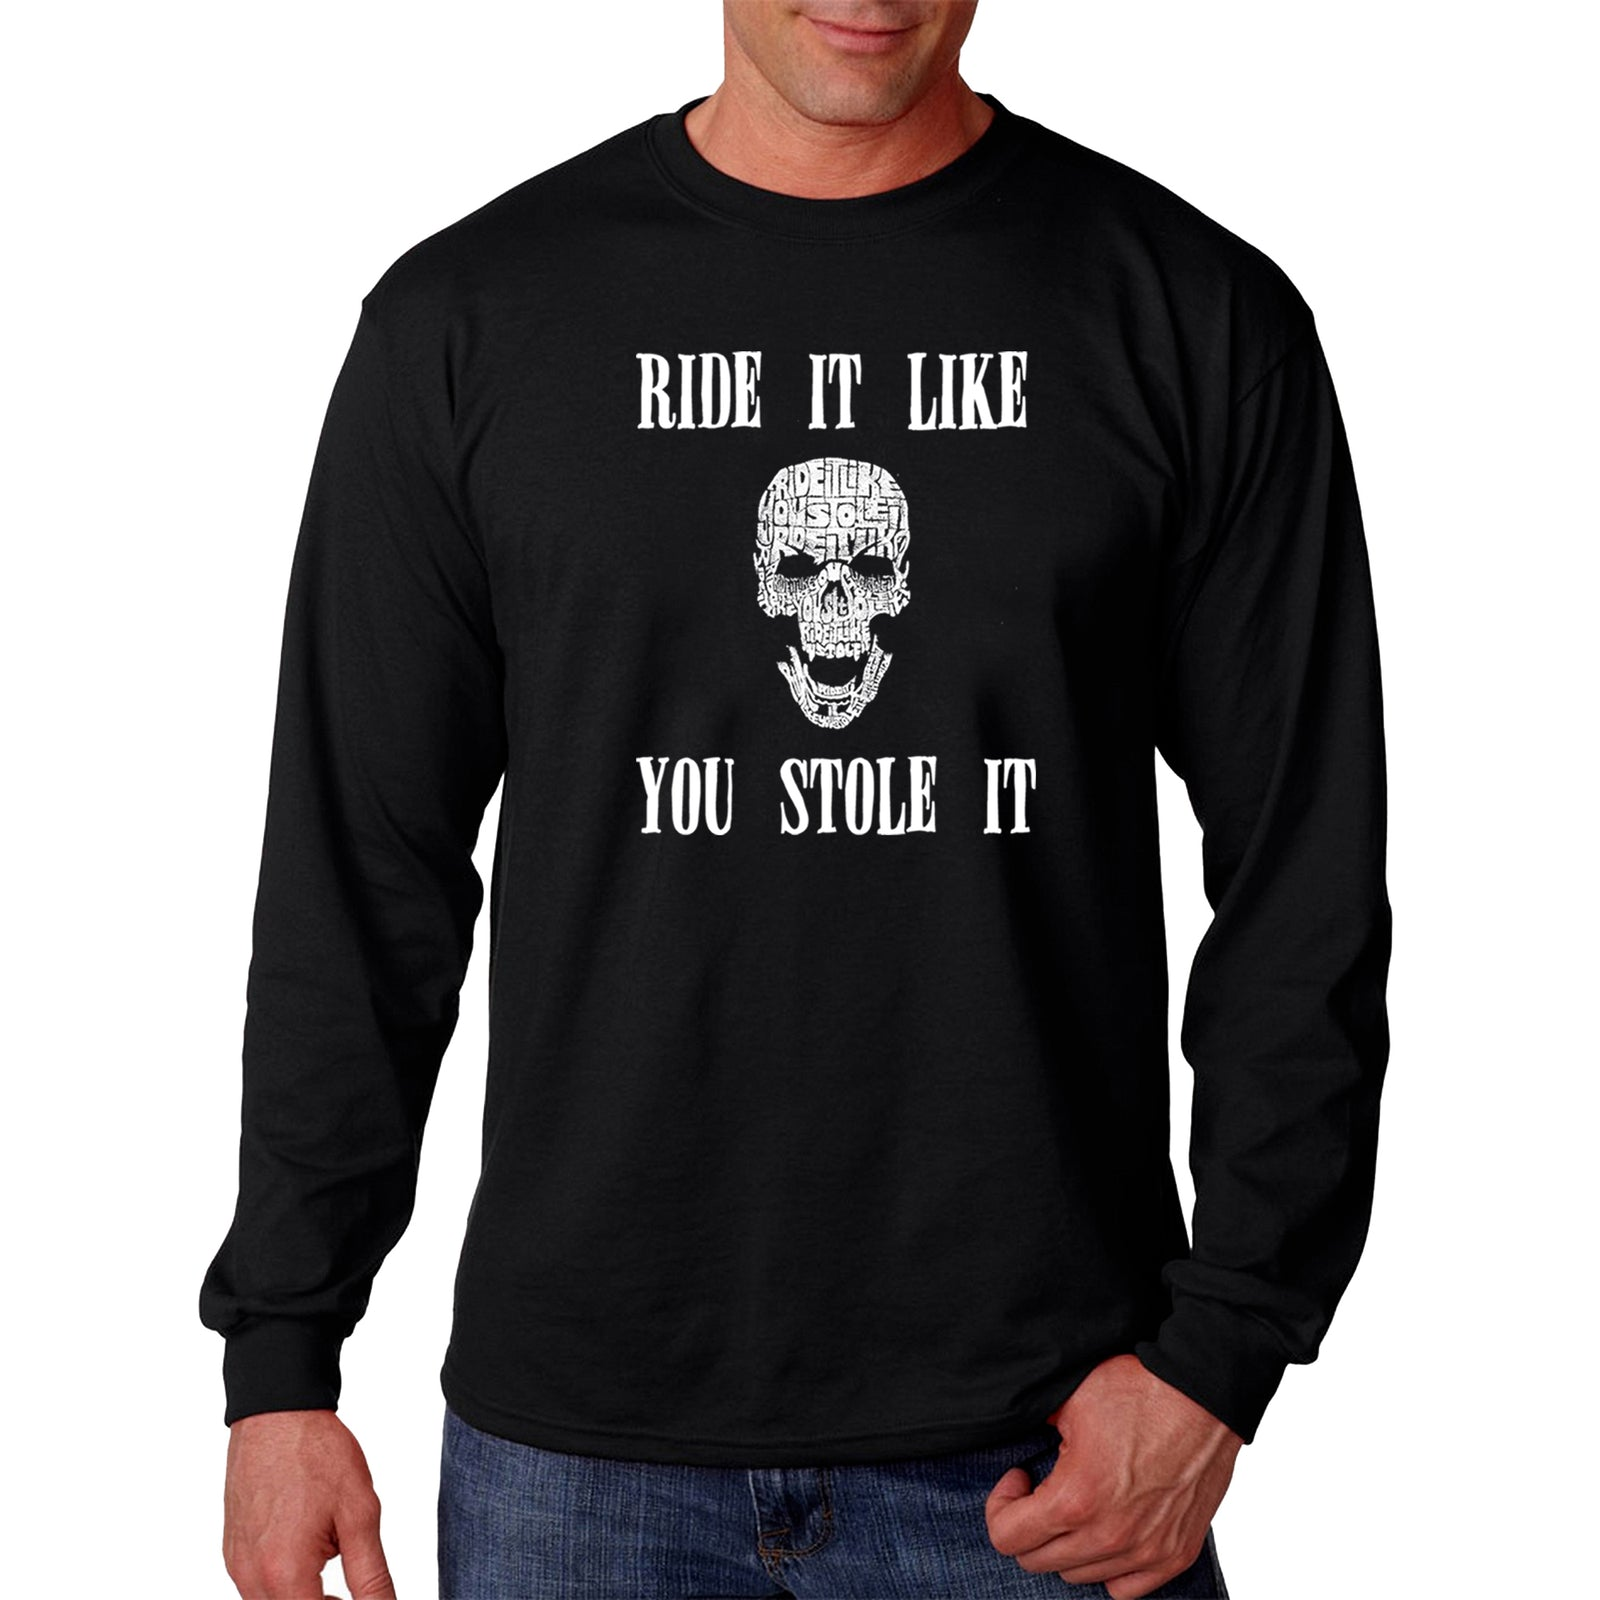 Men's Word Art Long Sleeve T-shirt - Ride It Like You Stole It